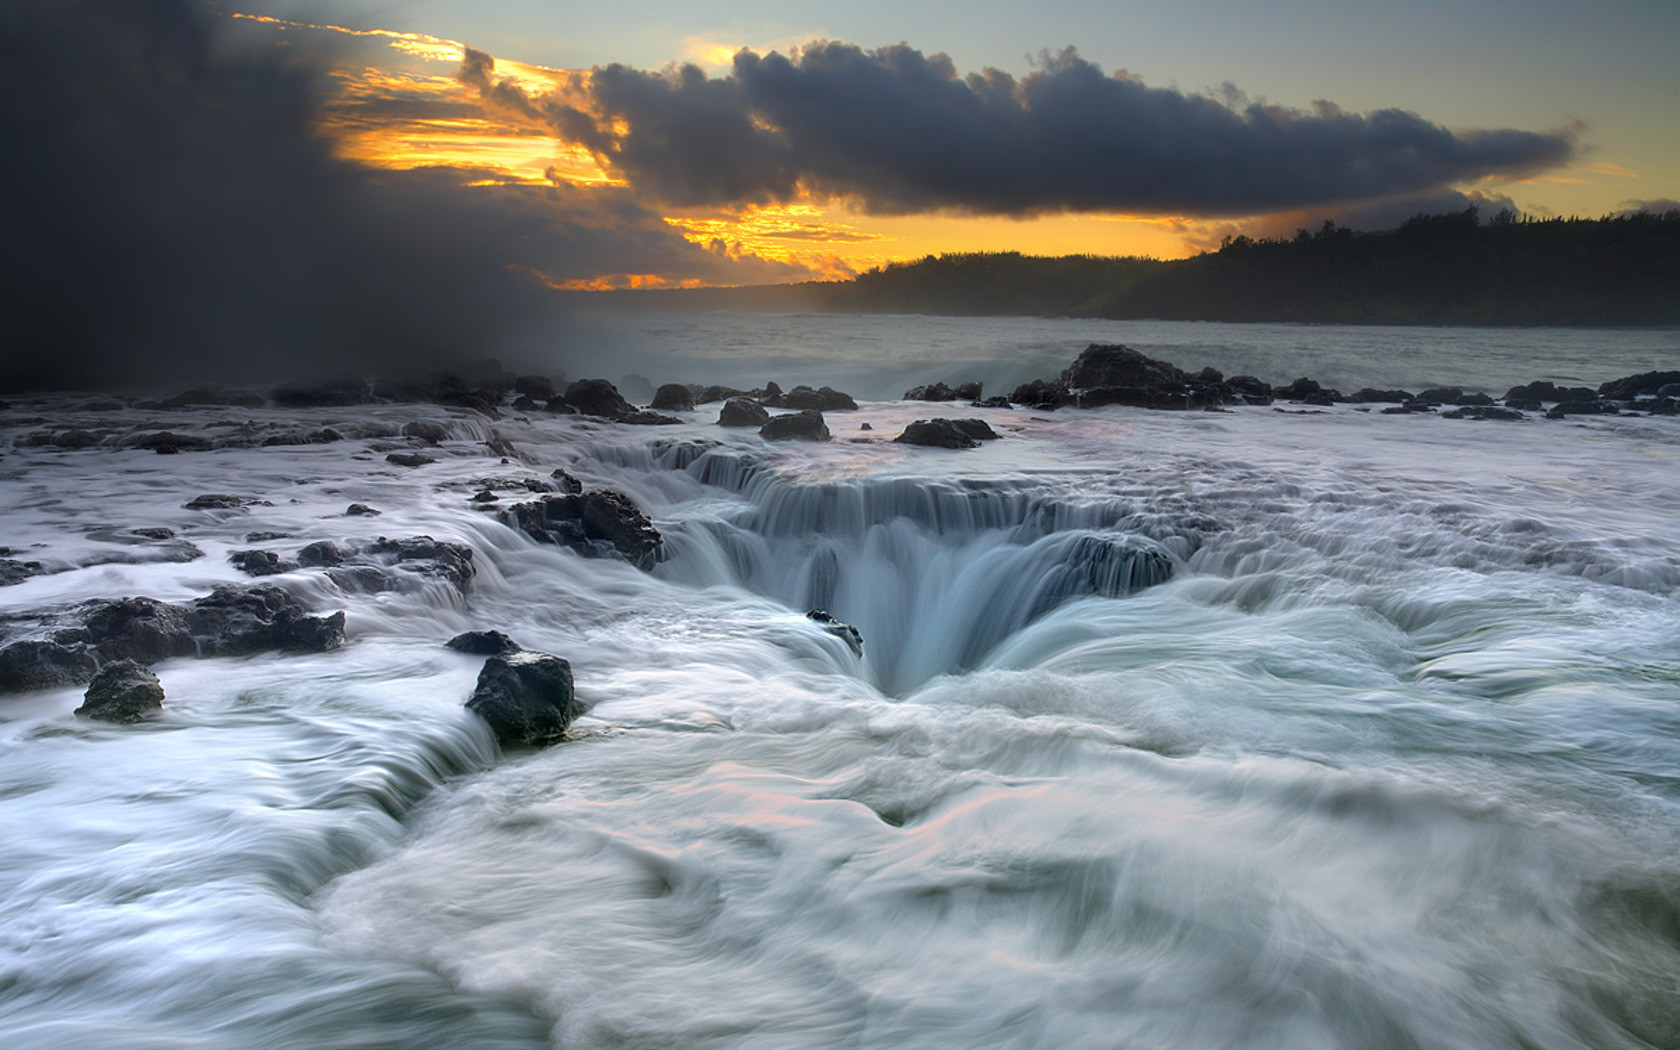 Maelstrom, a natural water drain in Kauai, Hawaii